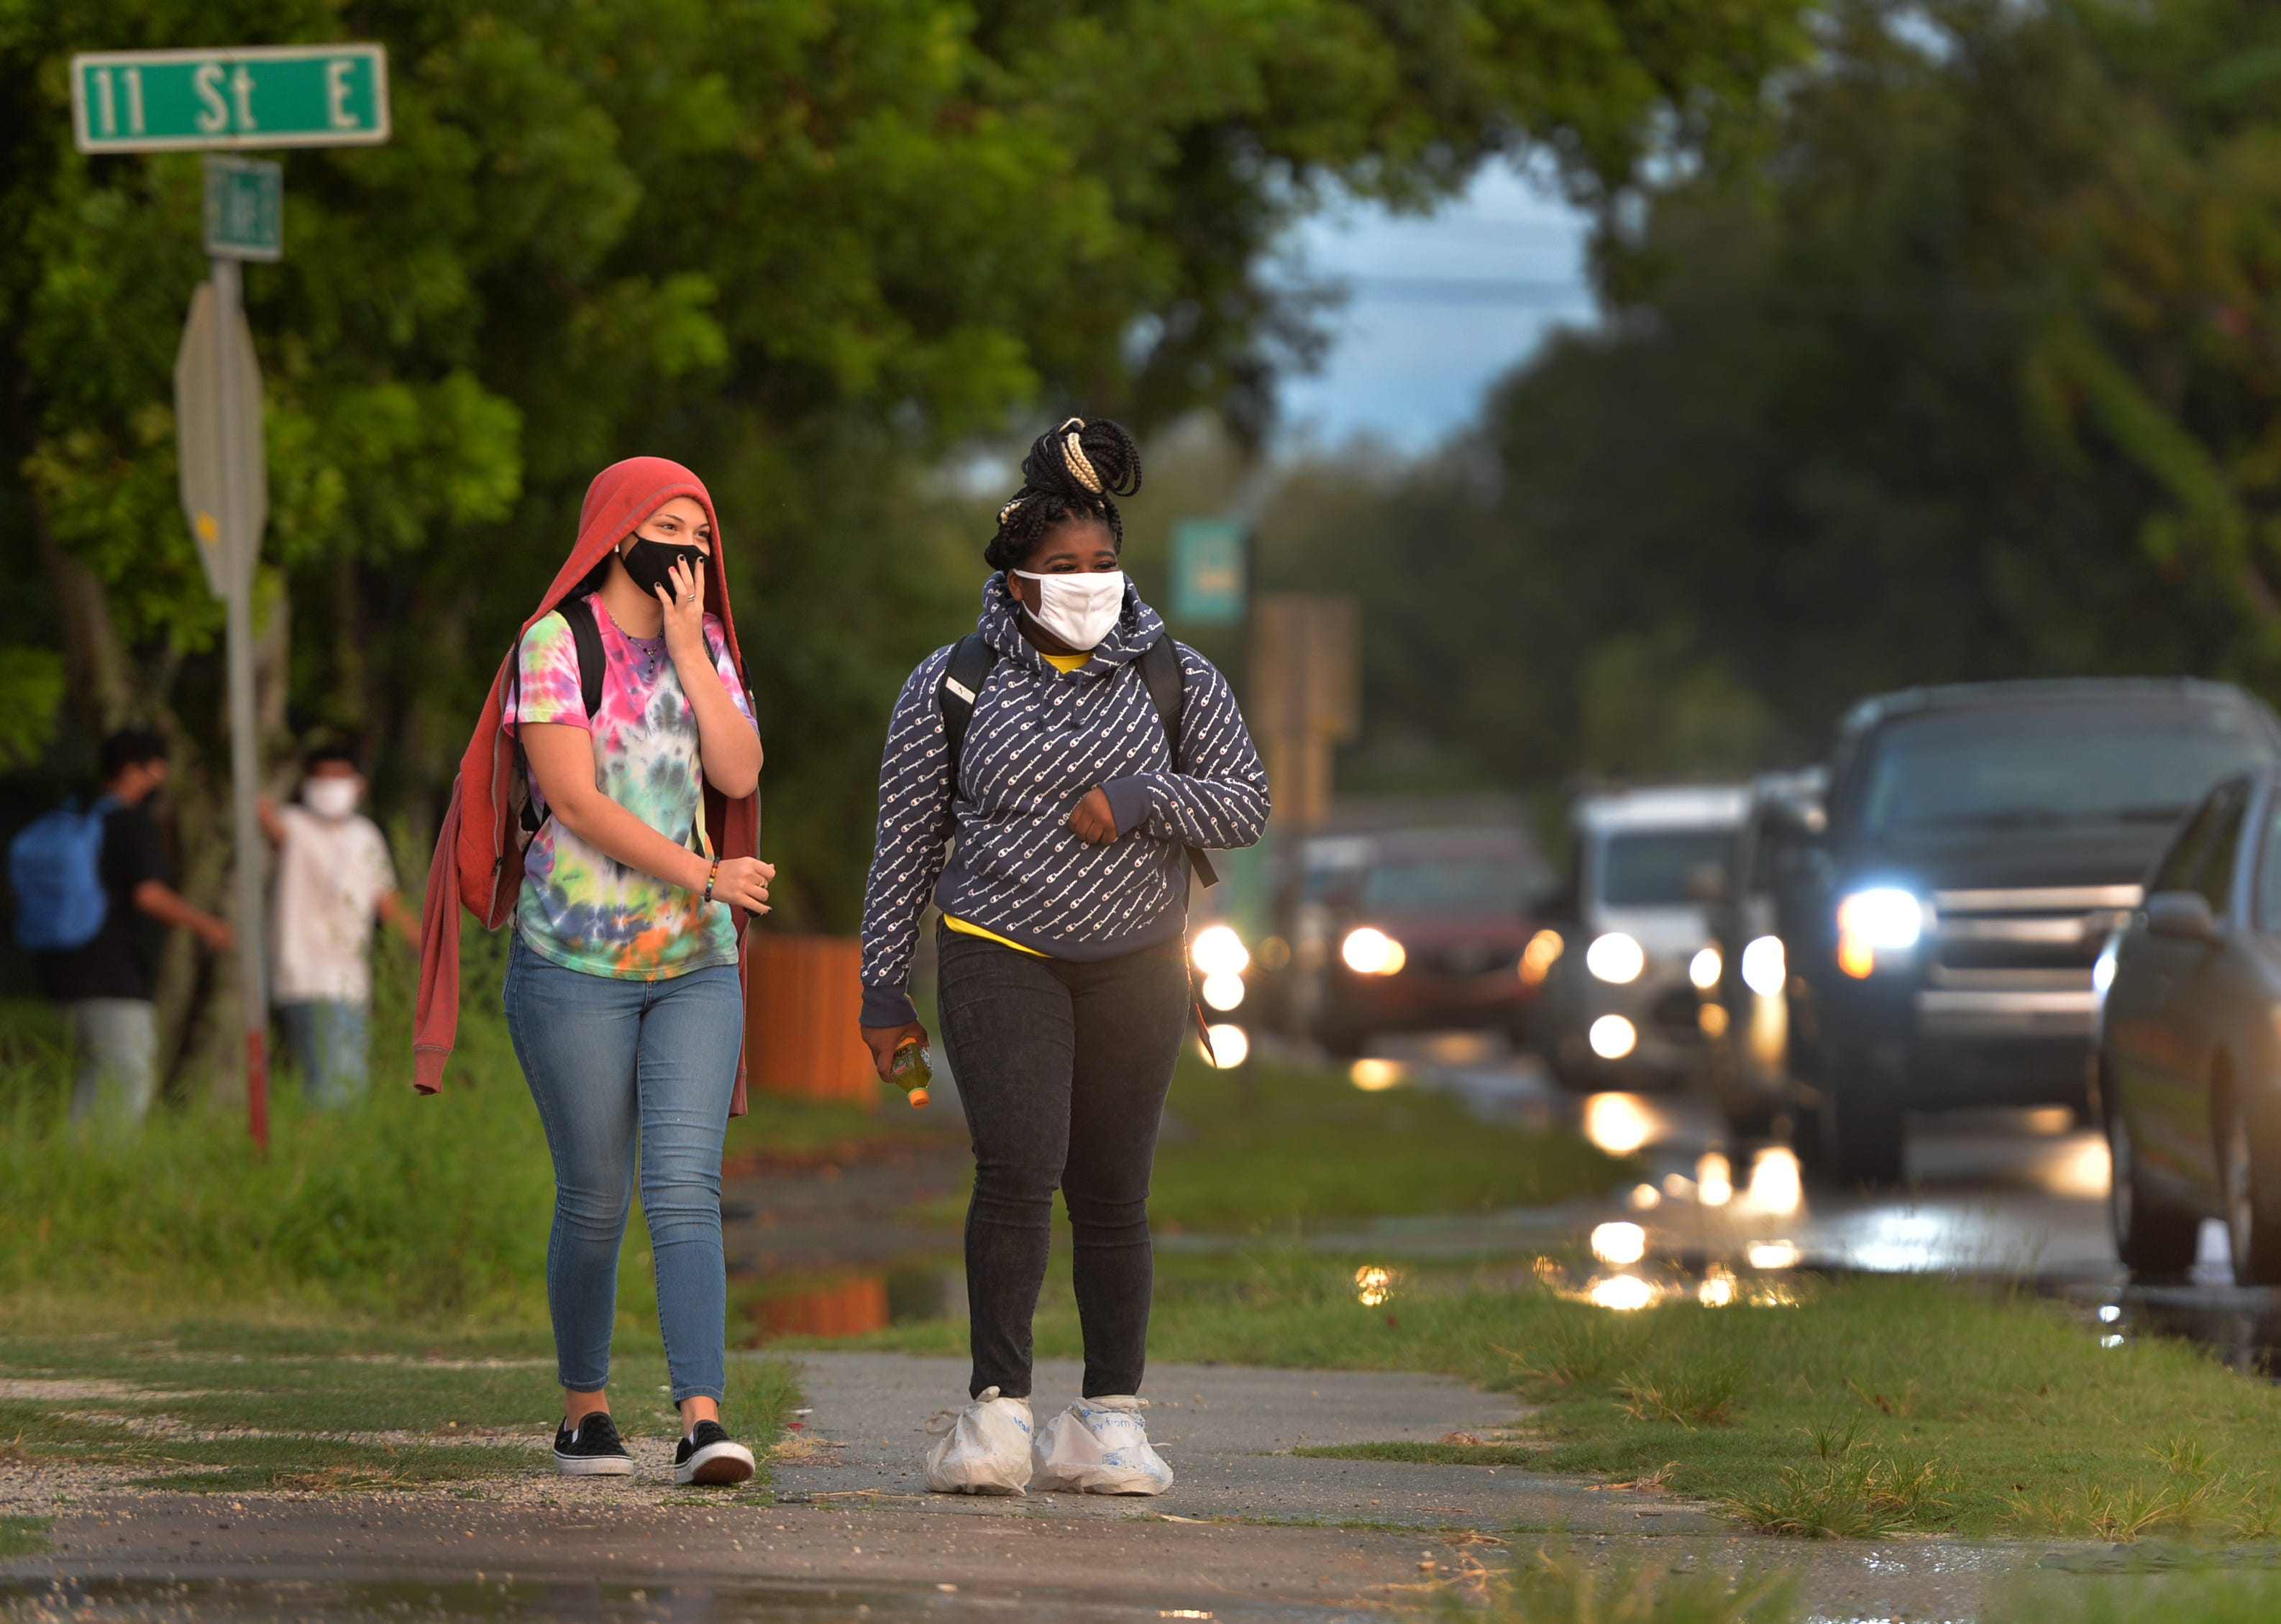 Florida education commissioner tells schools to make masks optional for 2021-22 school year